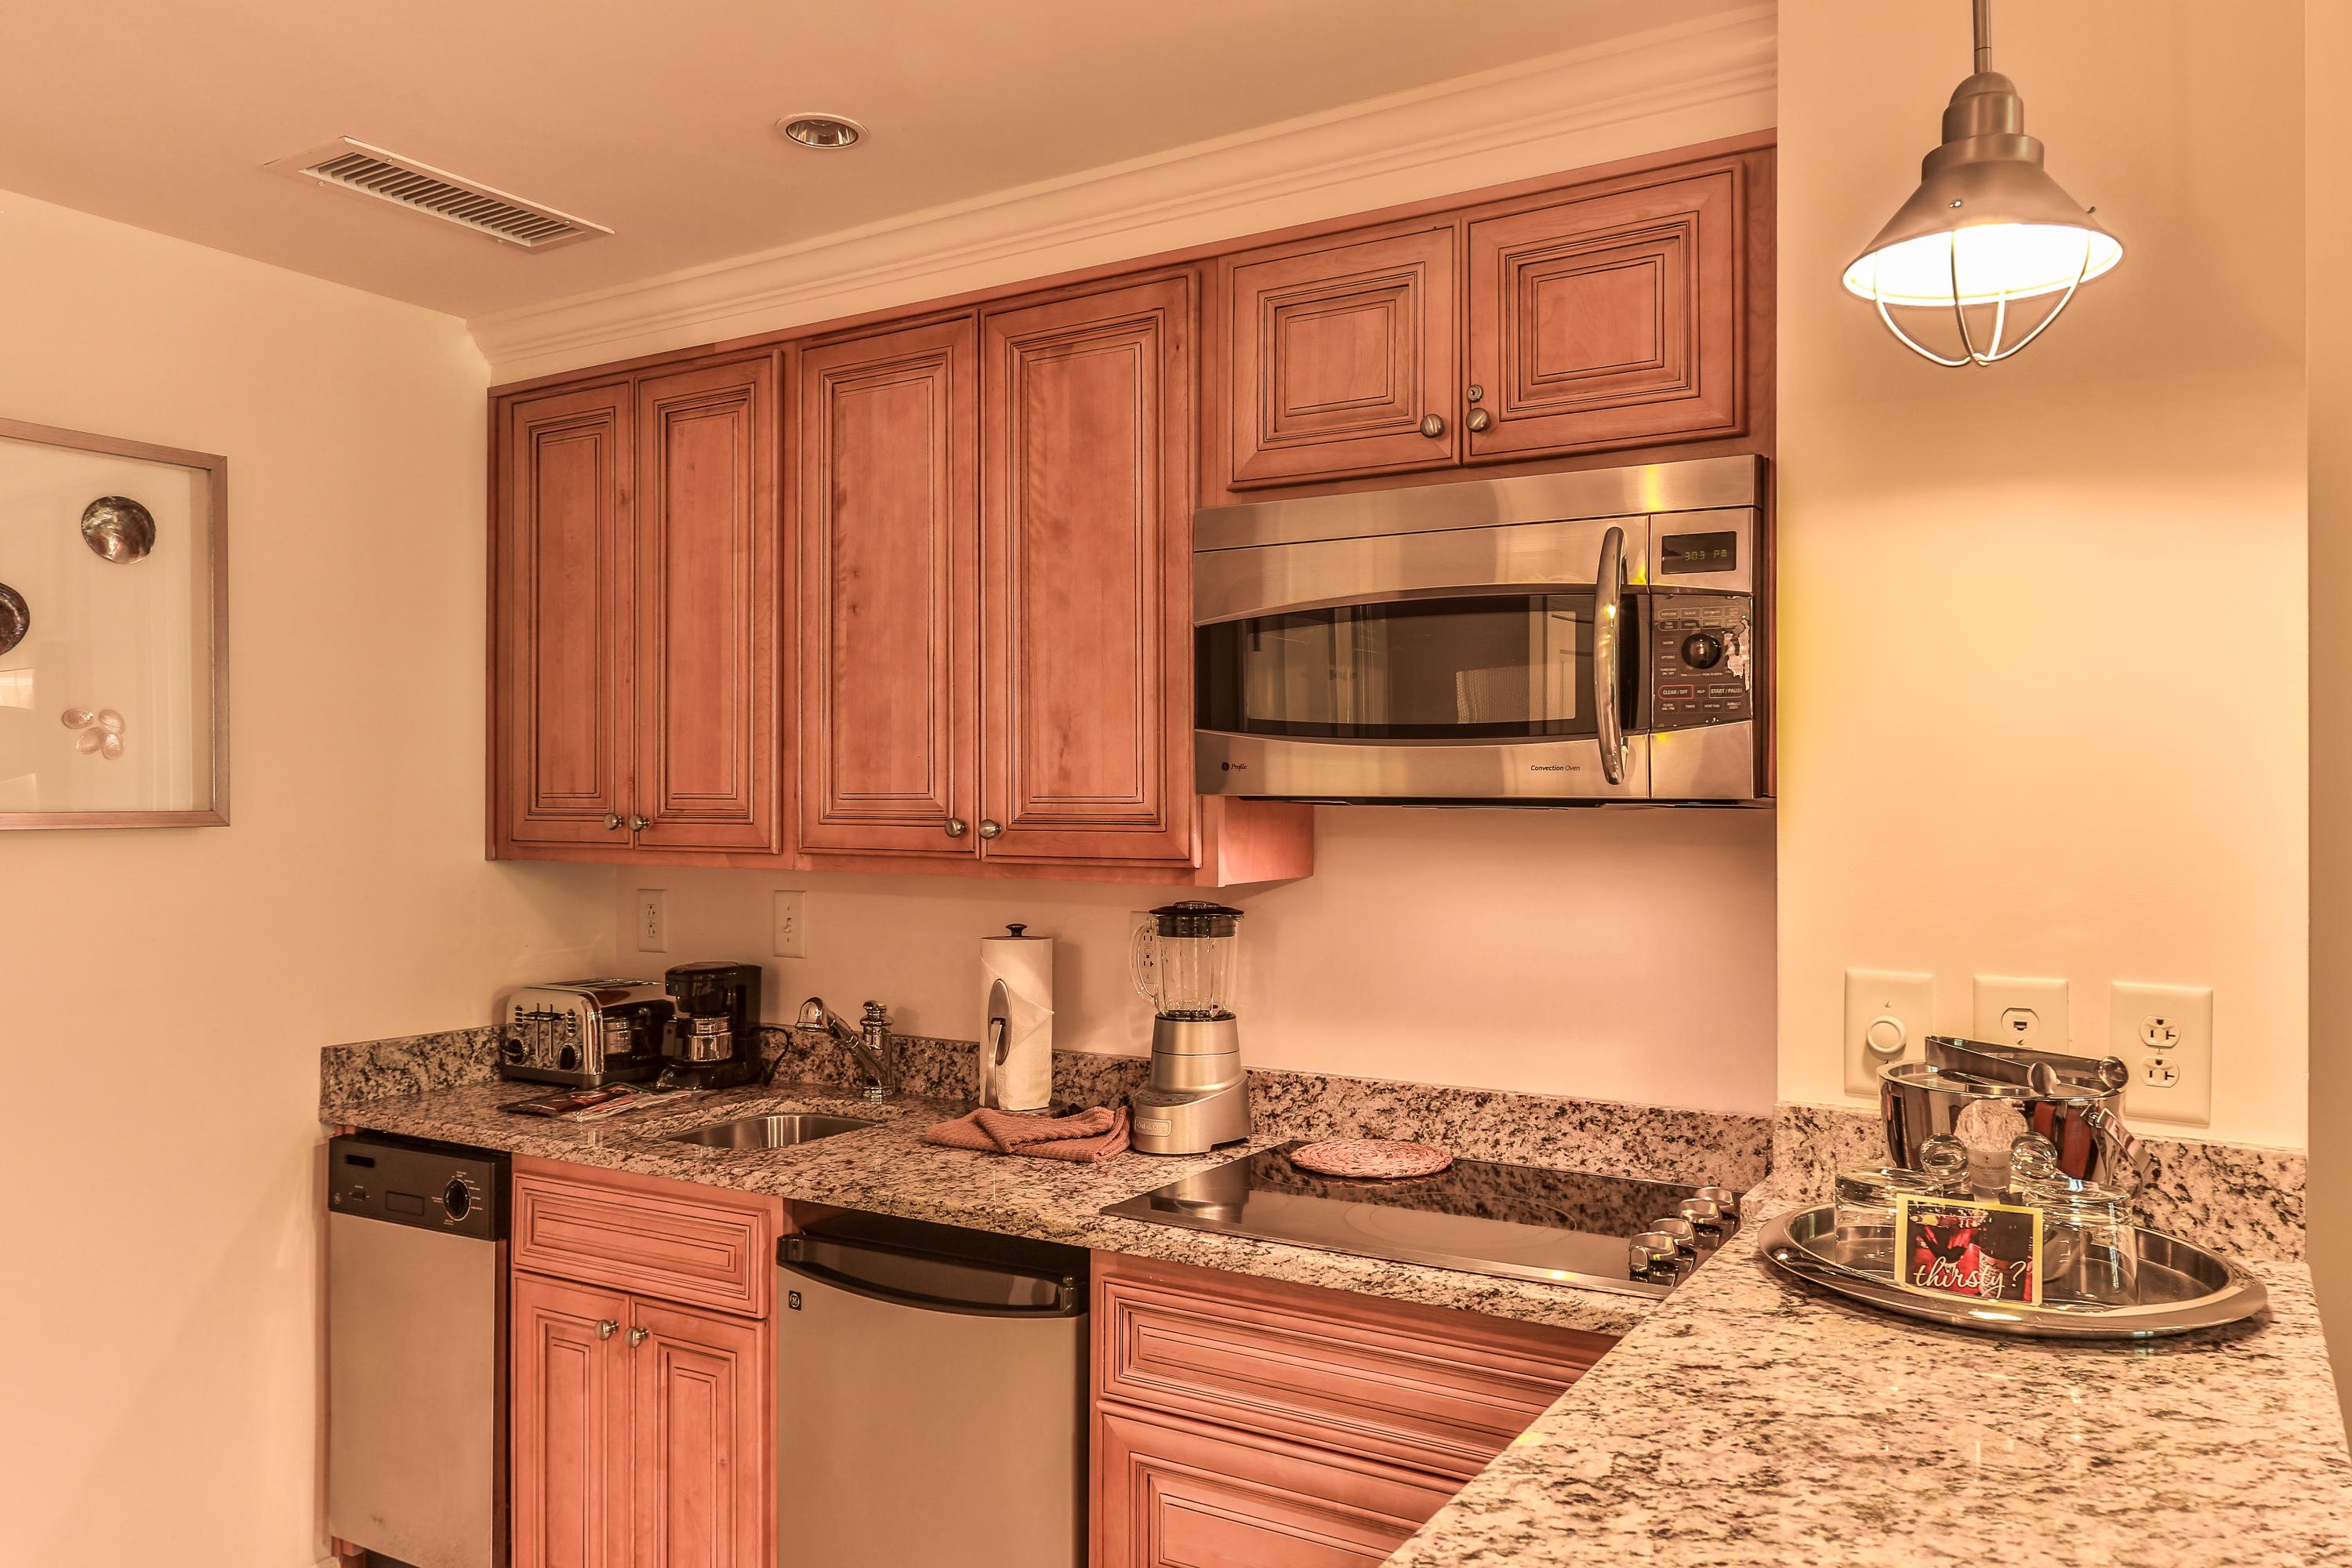 Wild Dunes Homes For Sale - A-408 Village At Wild Dunes, Isle of Palms, SC - 7